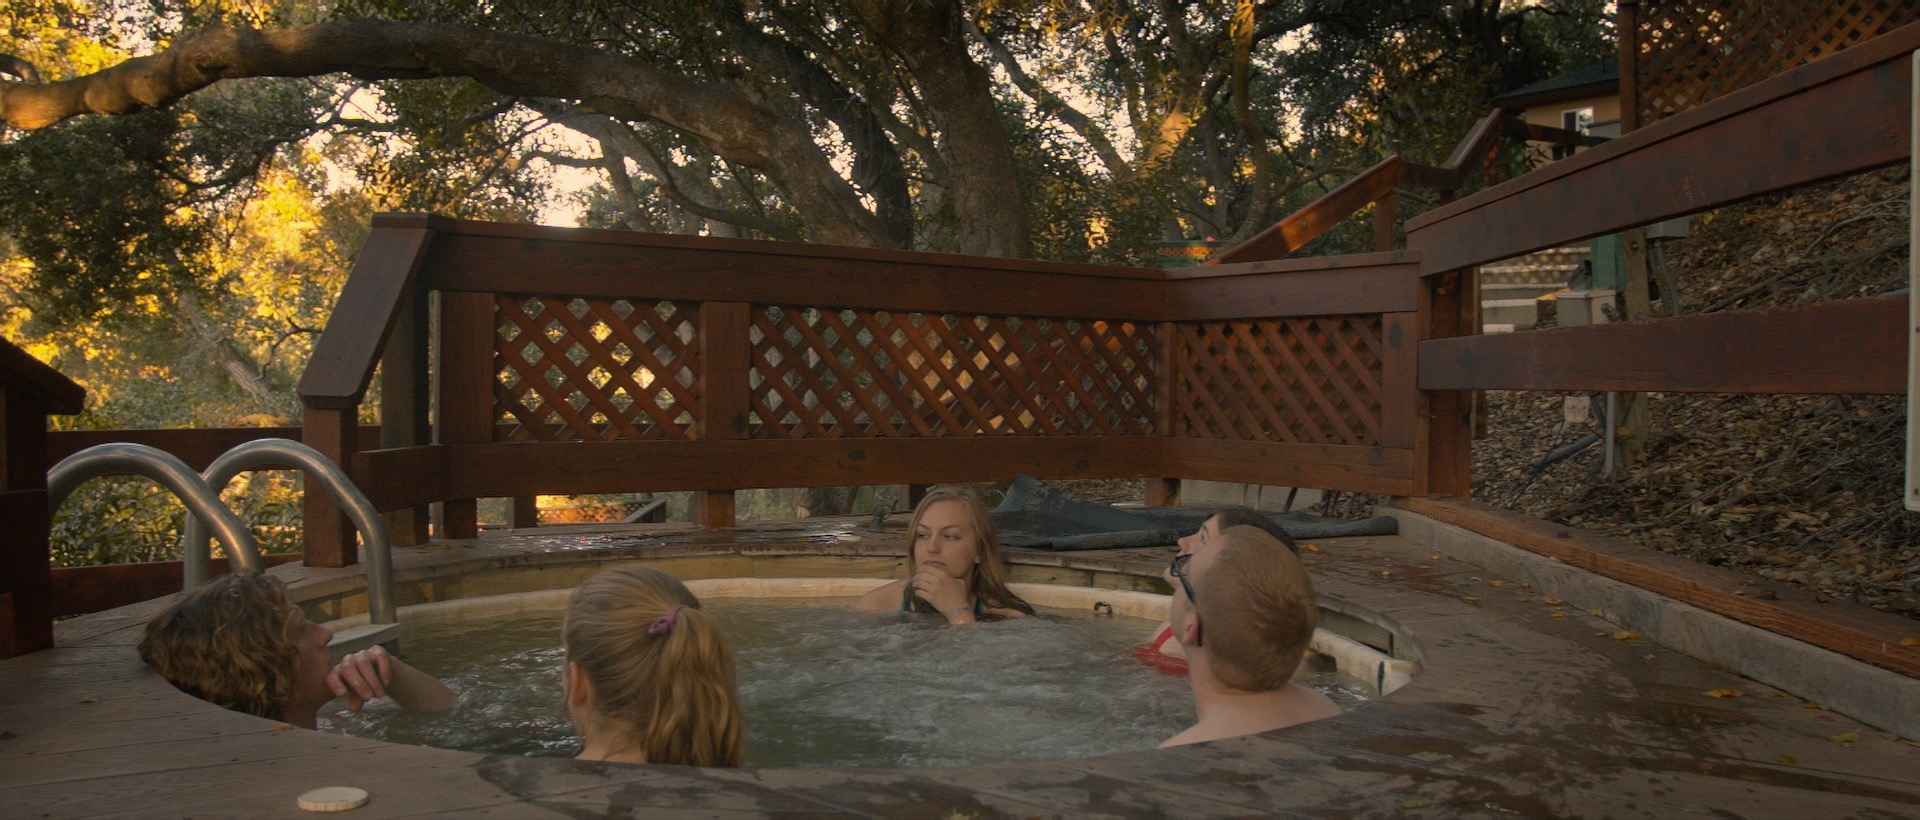 Just south of SLO is a resort offering heated mineral spring spas